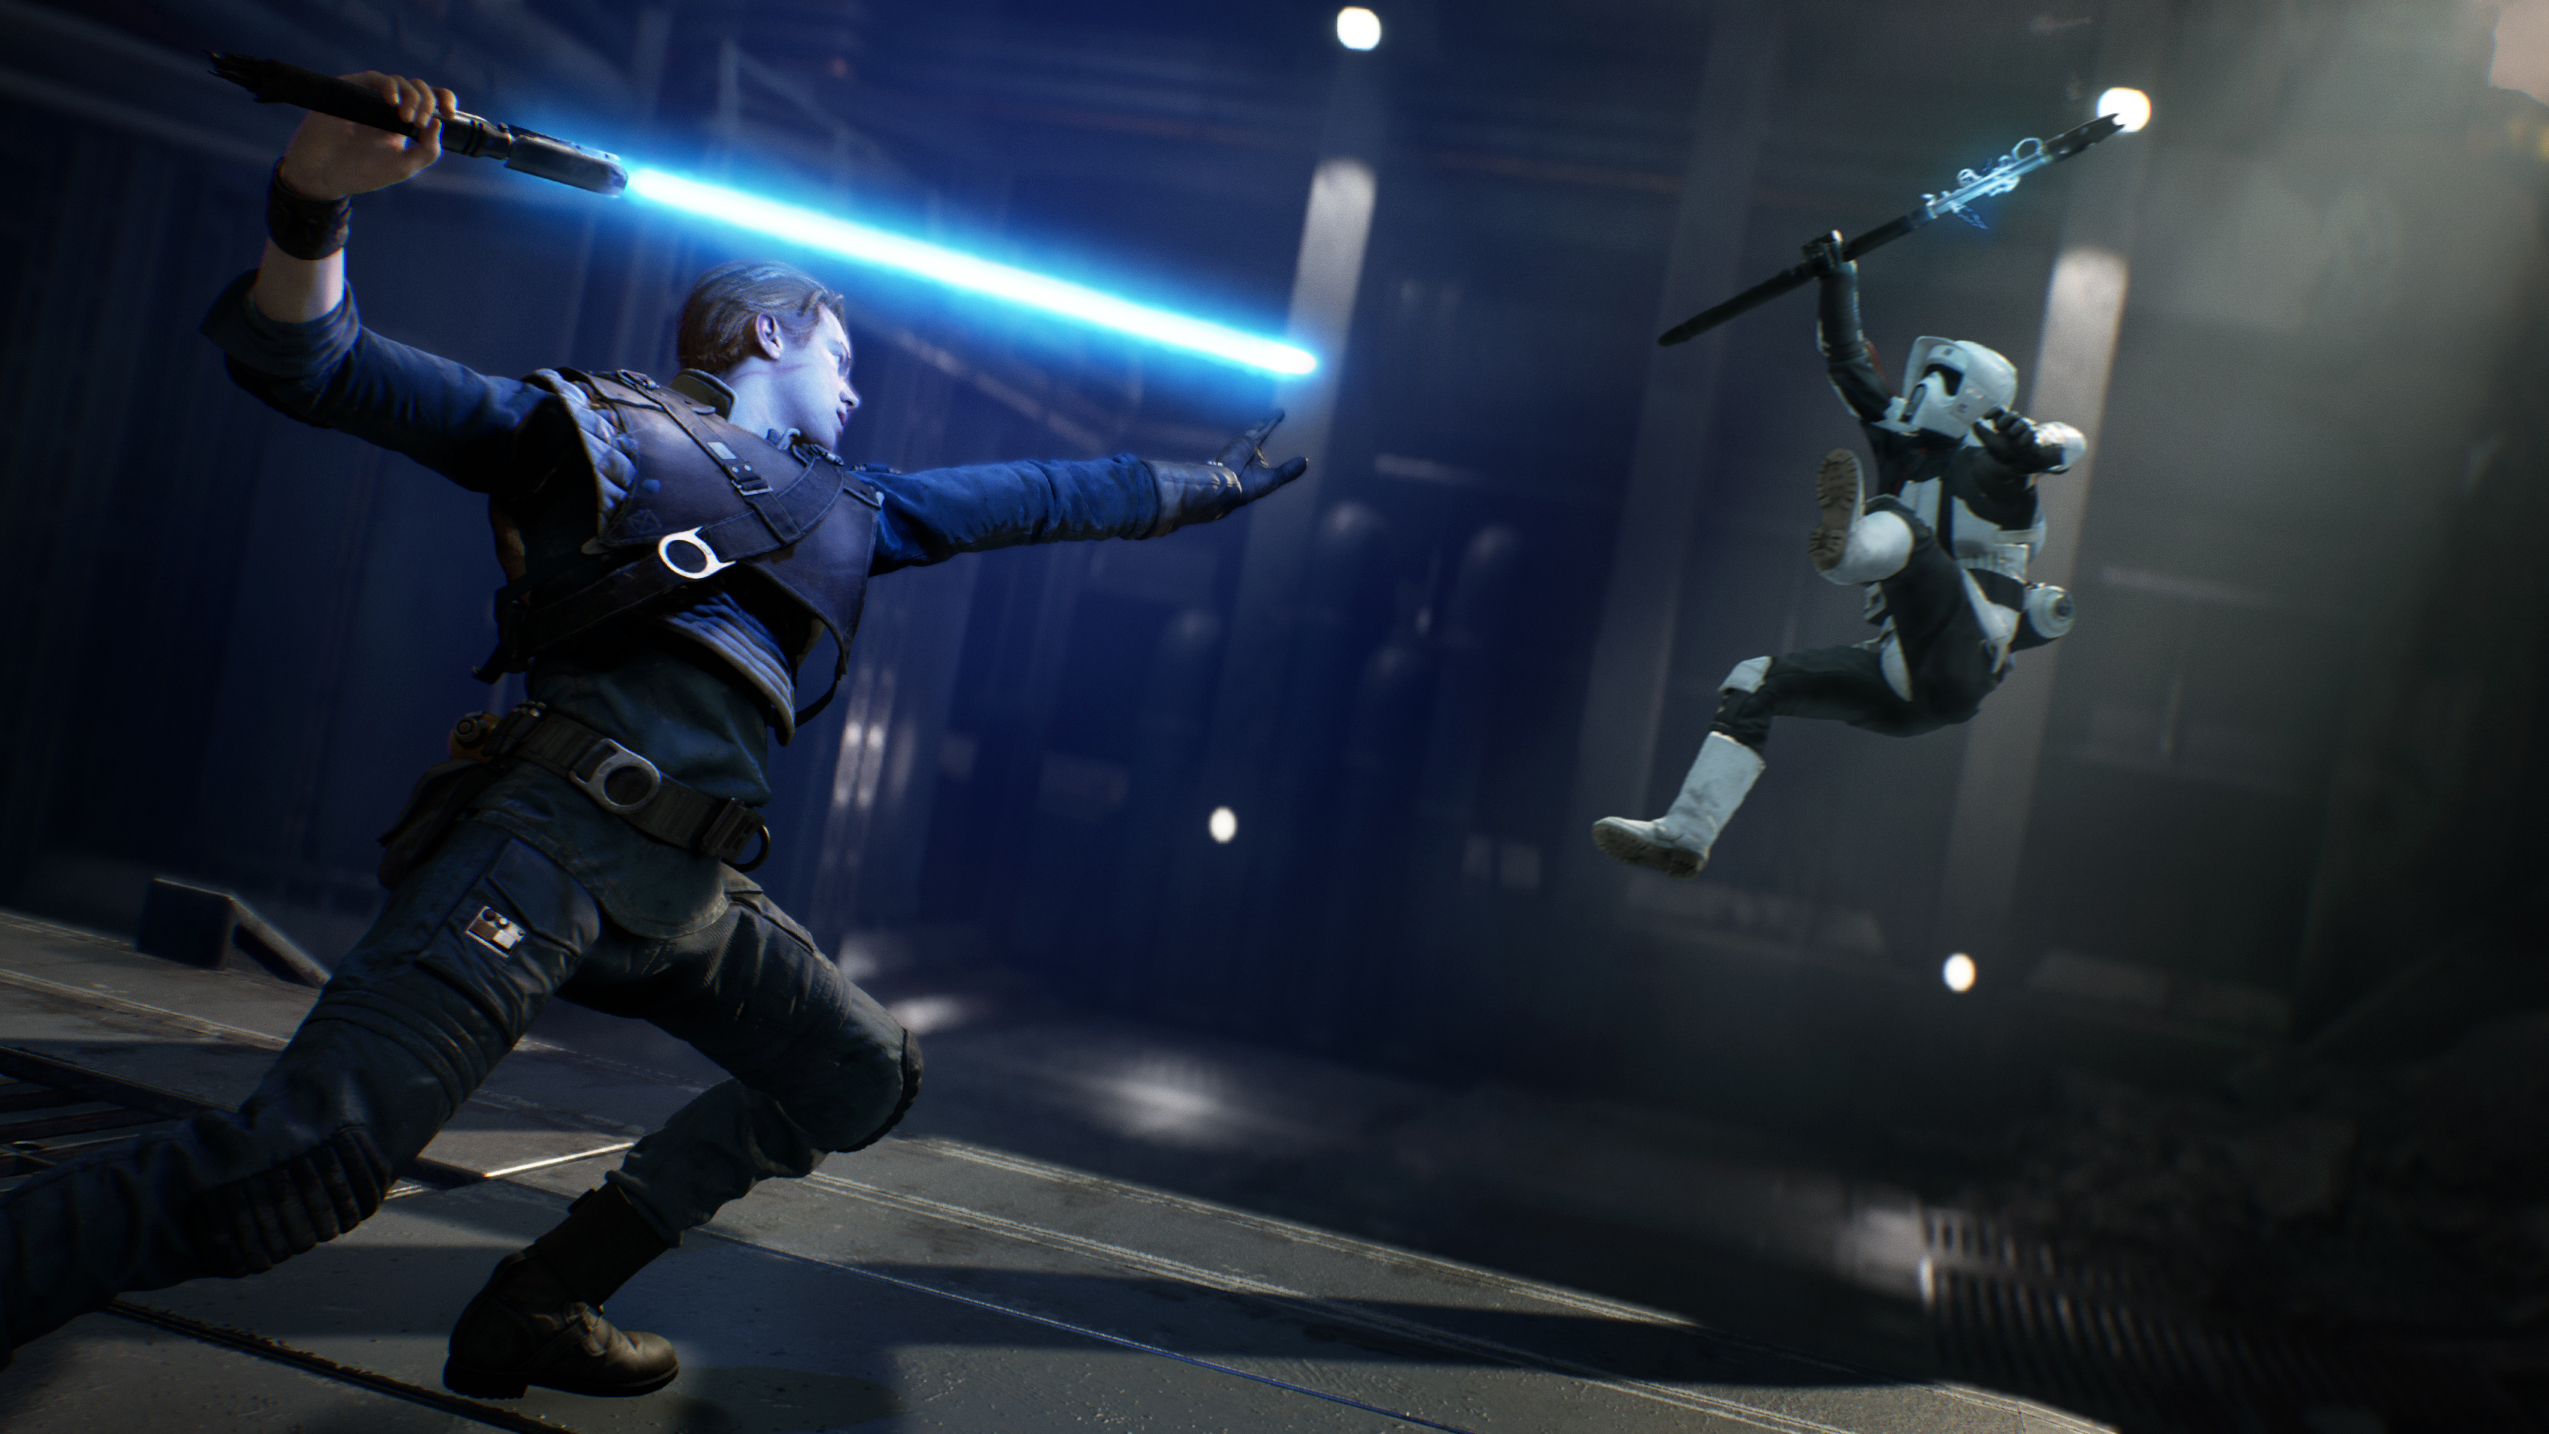 Star Wars Jedi: Fallen Order gameplay, release date, trailers and first impressions